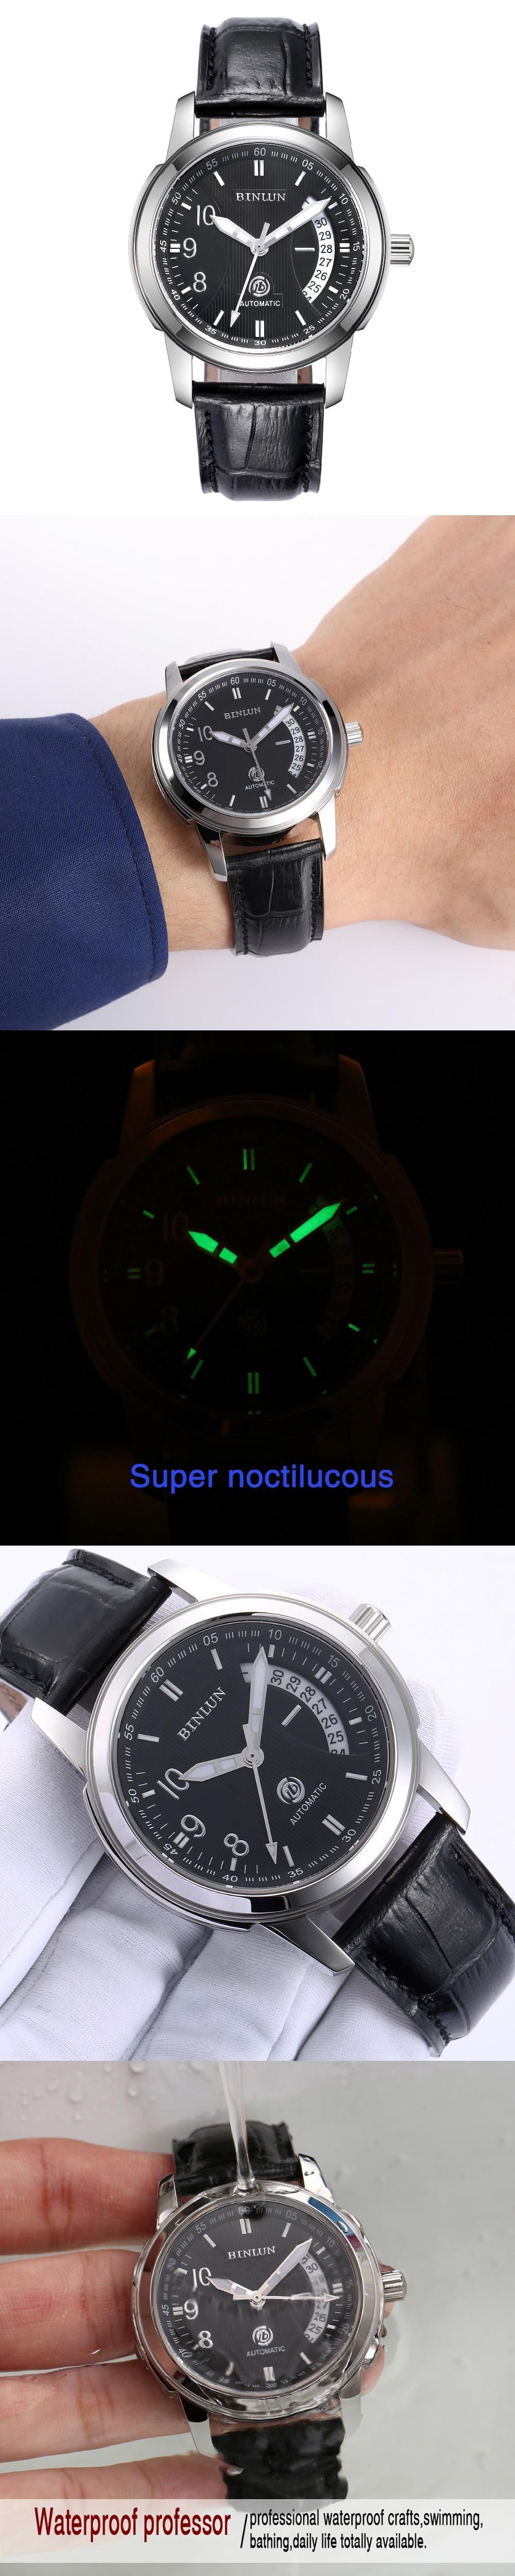 with outlined rl features sub hour numeral markers arabic fiber luminous dials hands line second carbon patterned minute along watches dial and red the